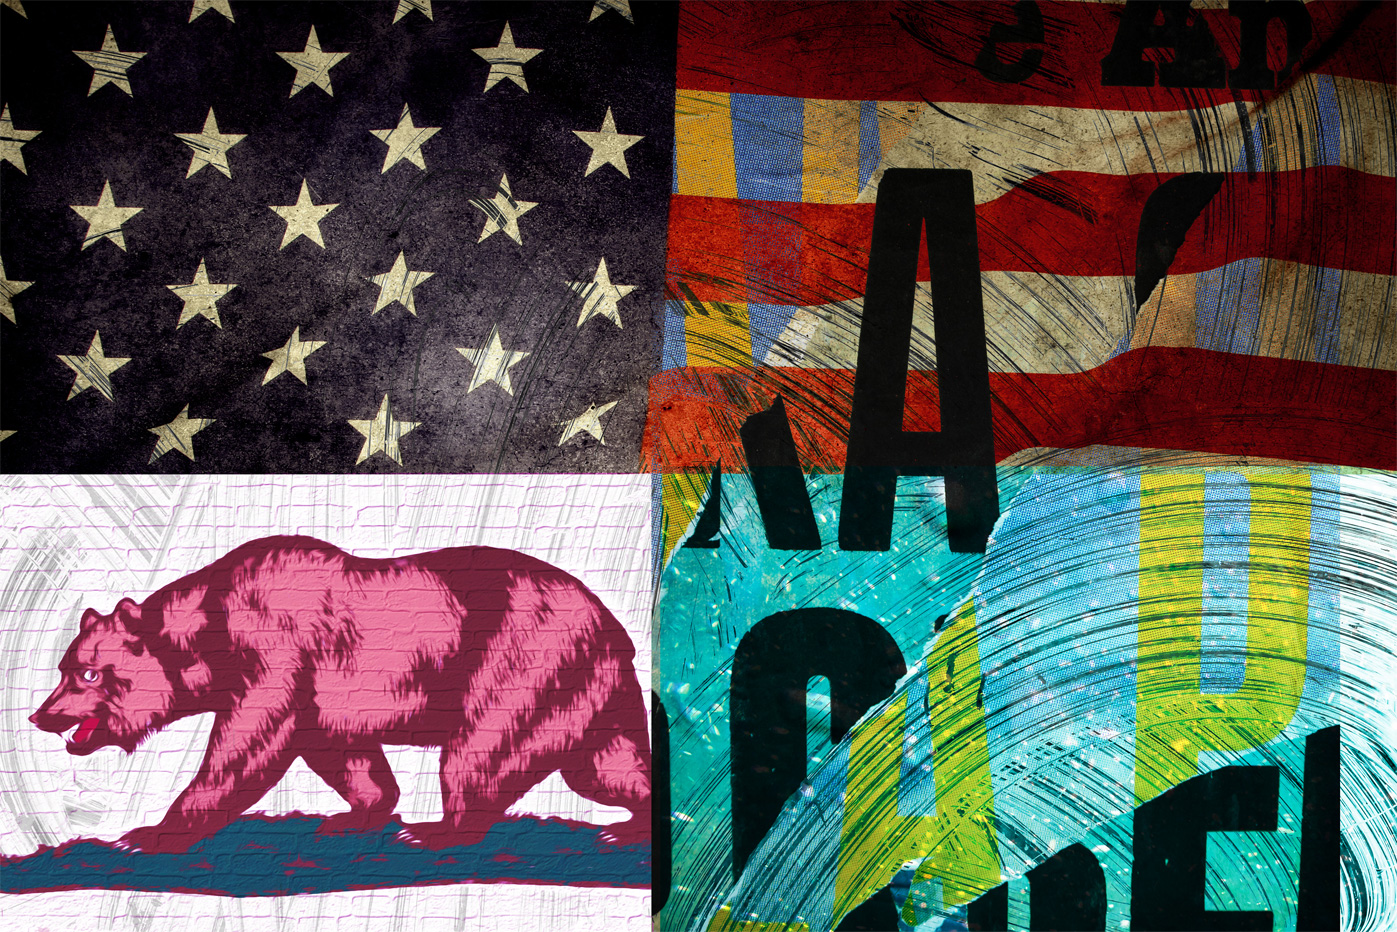 CALI-CATION,  PATTERN  The CALI-CATION design started when I was inspired to combine the California beach scene of textures and combine them with our nations flag. I pulled these textures from underwater images my friends and I shot as well as huge brush strokes I created in photoshop. The pop of color combinations work very well on apparel as they give the feeling of being in California on a summer day.